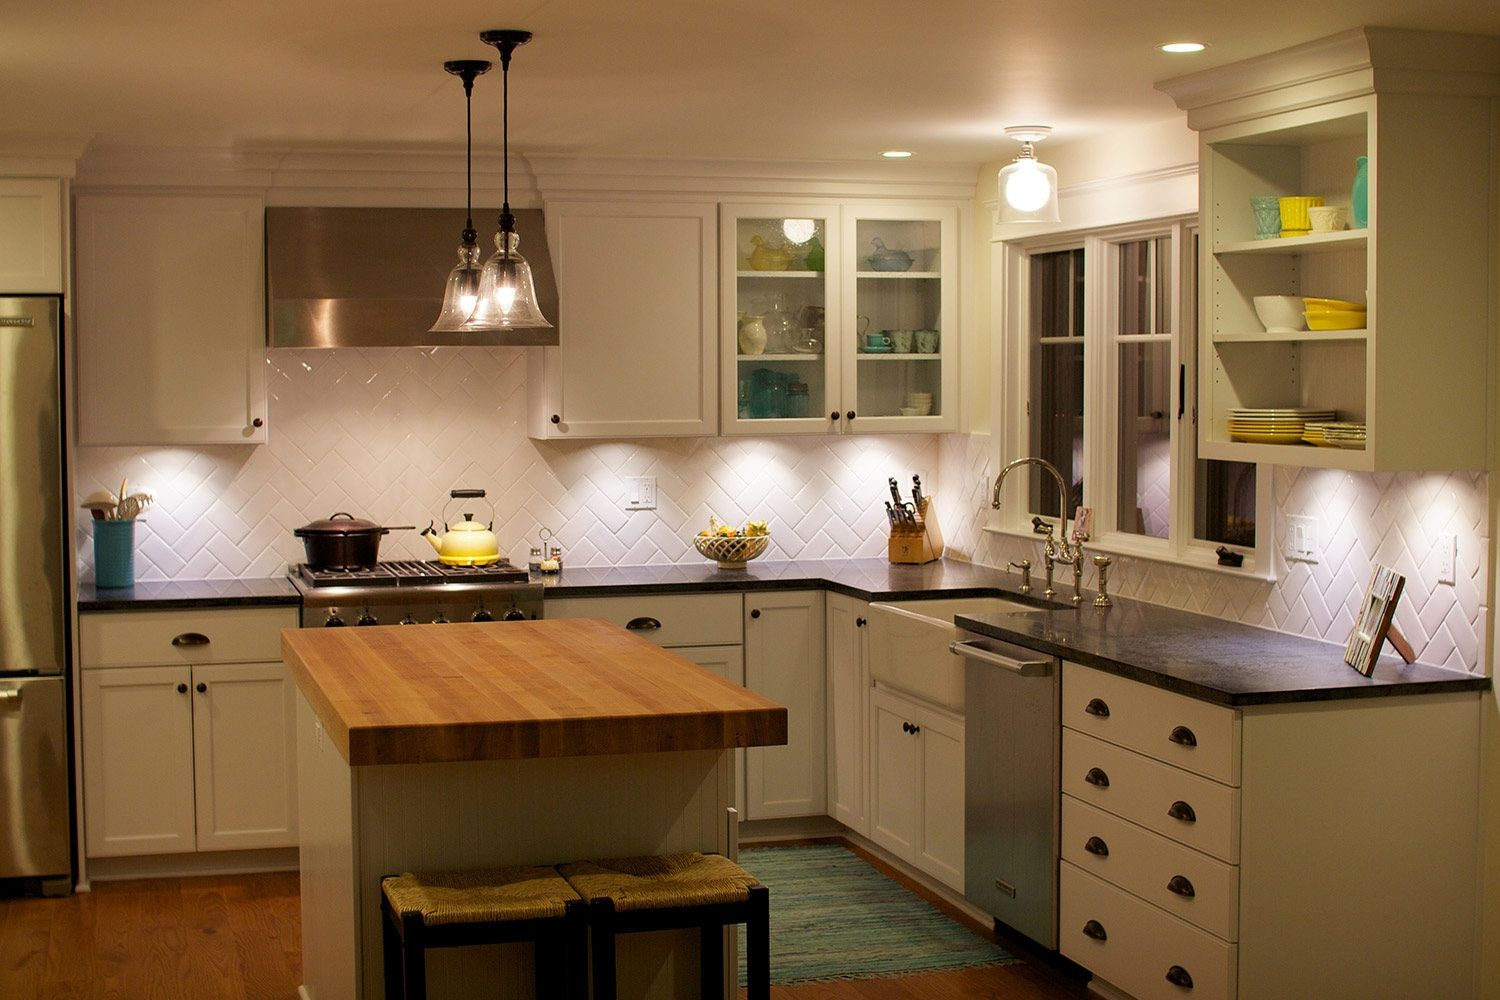 diy under cabinet lighting. Puck Under Cabinet Lighting Spacing For Your Home Diy E